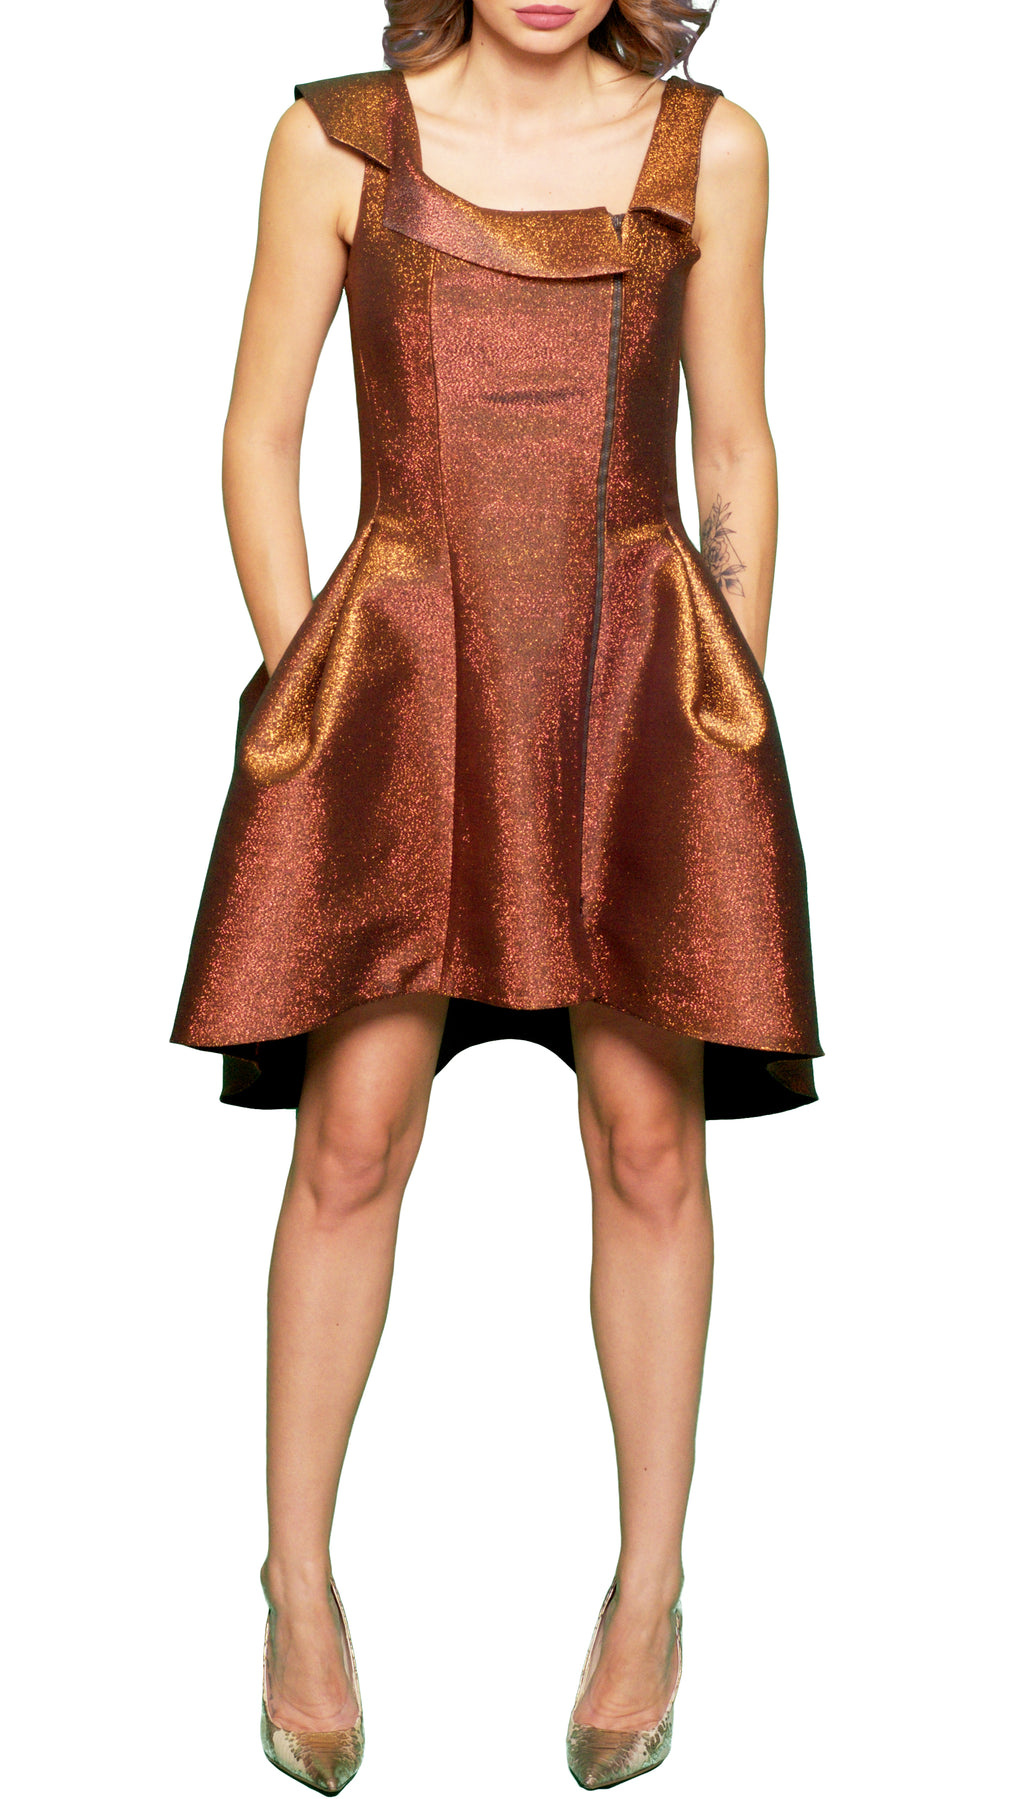 Golden Finish Dress